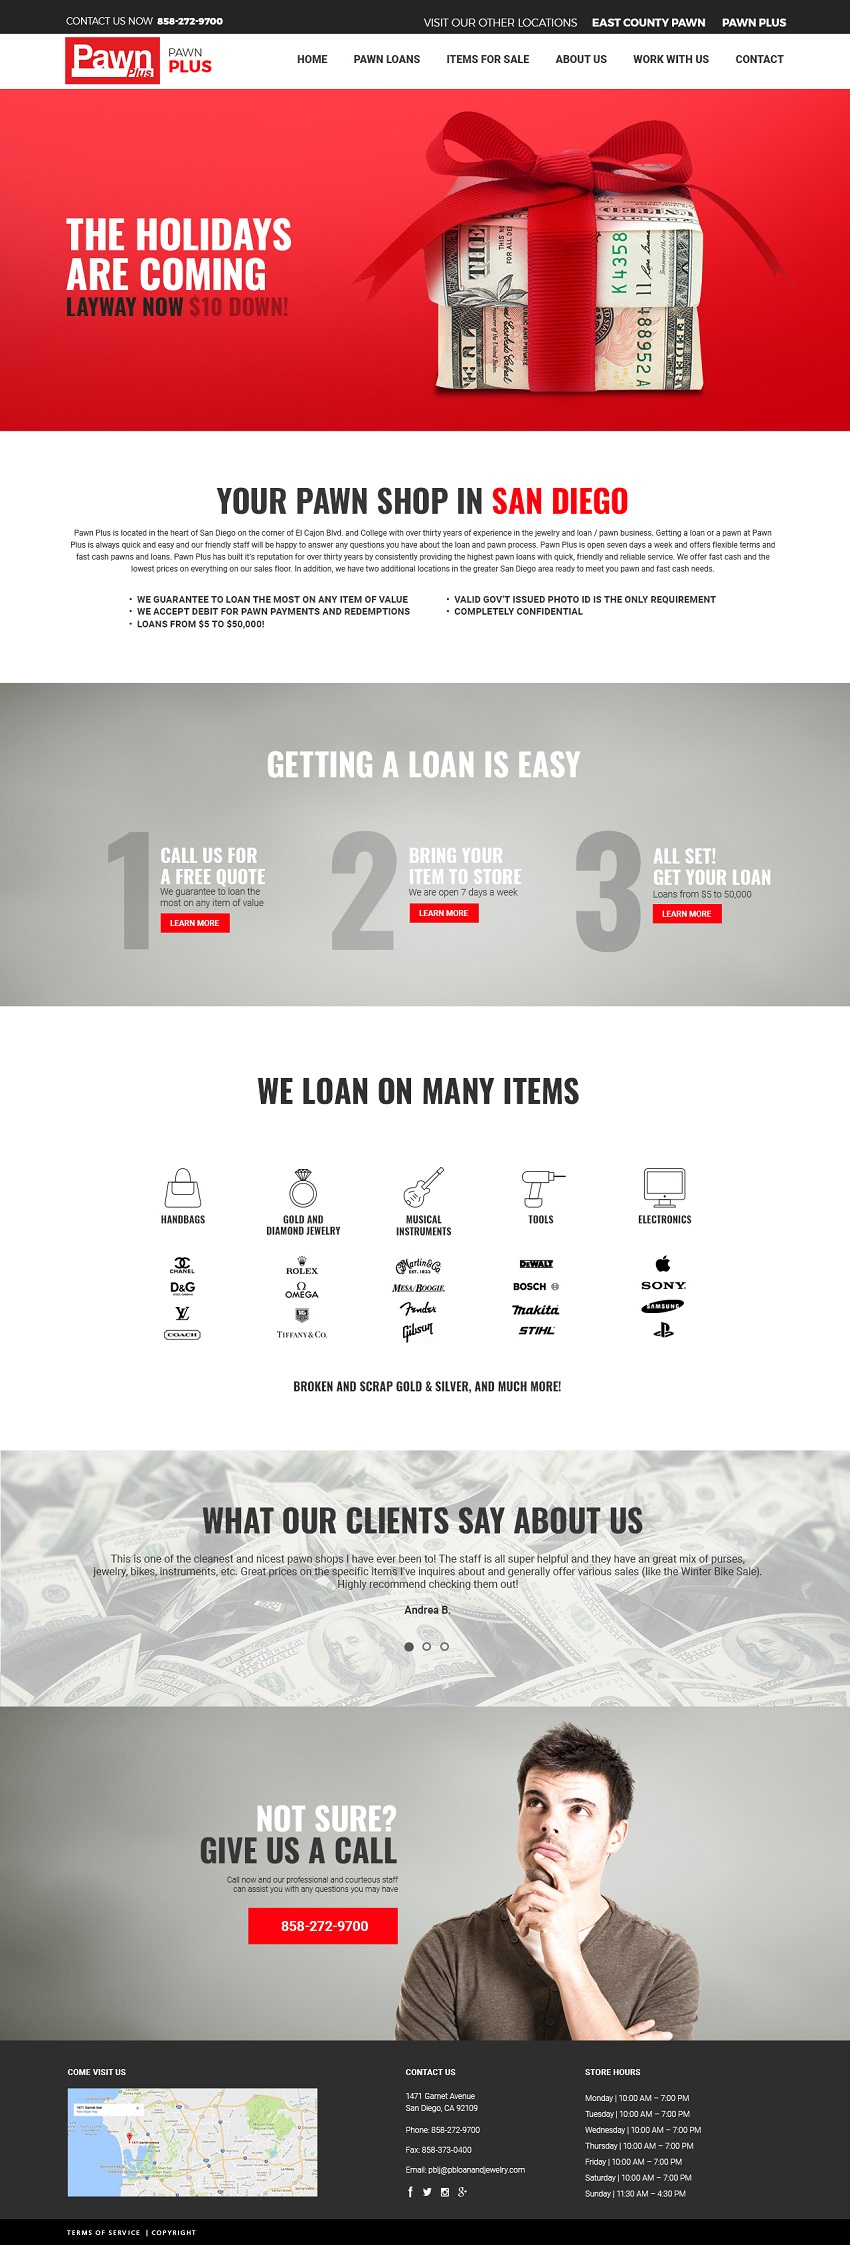 Image of Pawn Plus website design